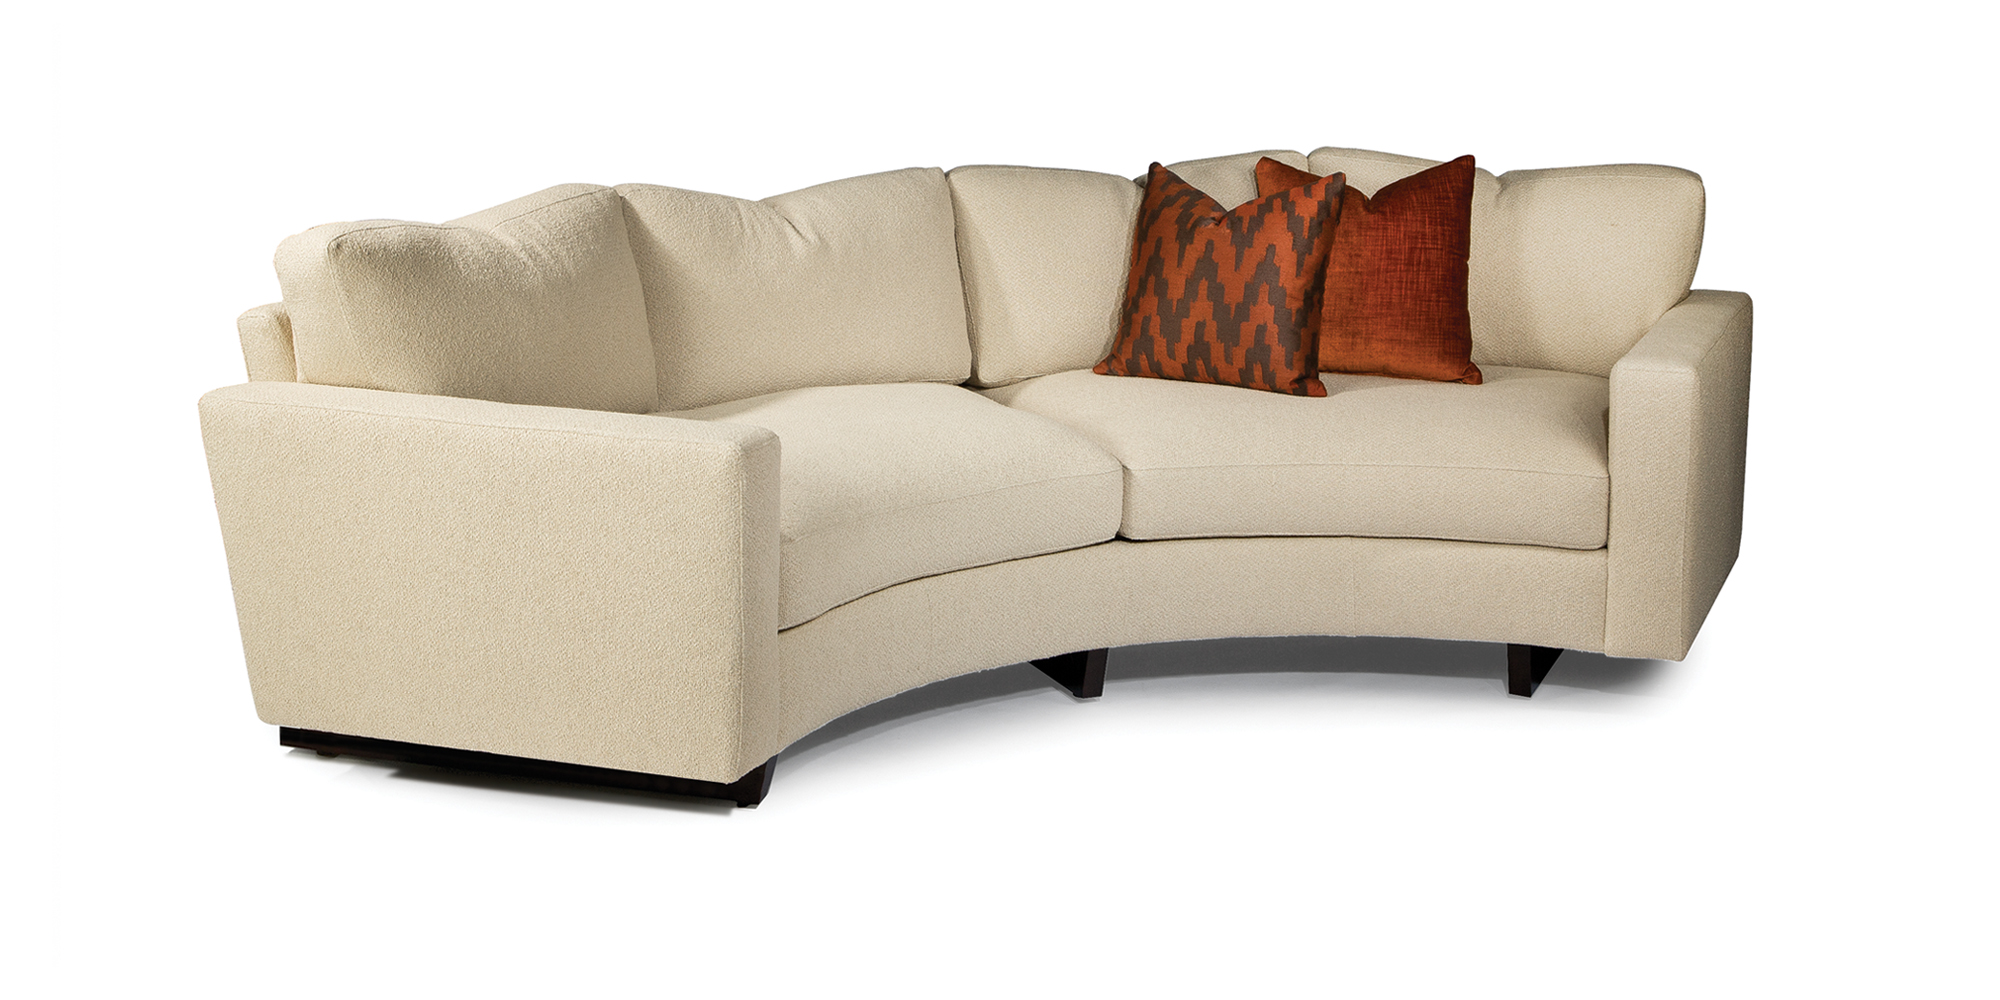 Thayer Coggin Sofa Gallery